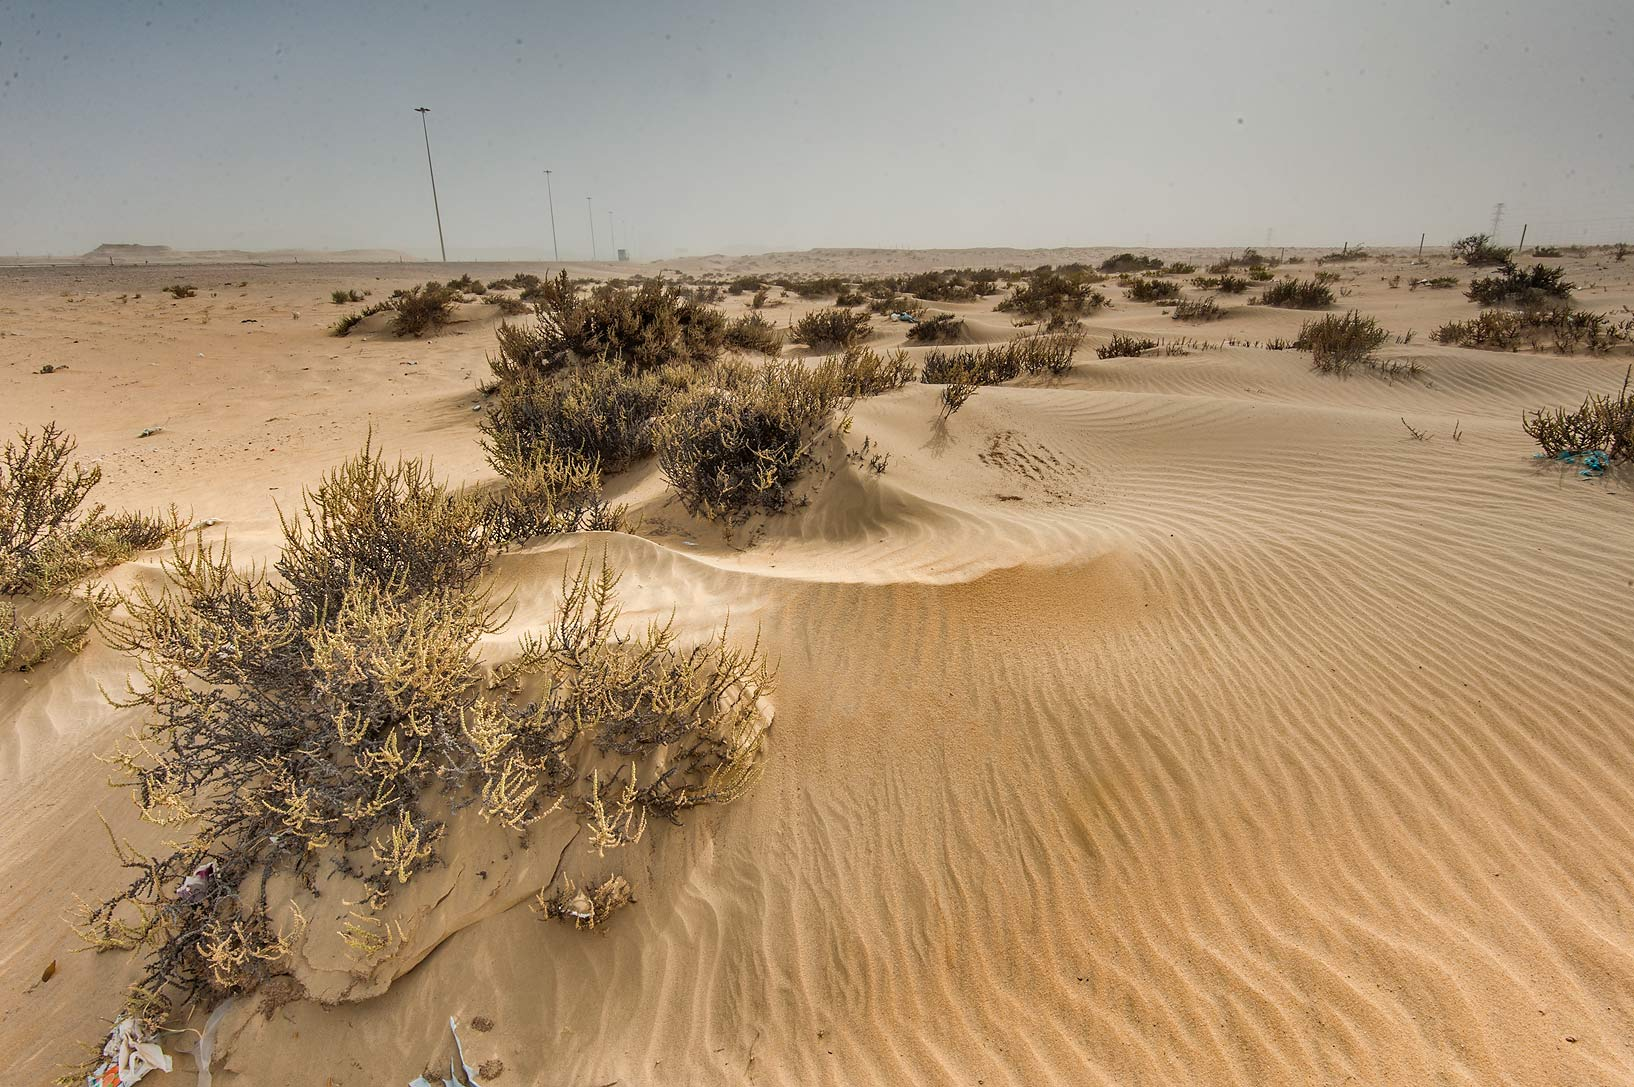 Windblown sand on roadside of Salwa Rd. in area of Rawdat Ekdaim. Southern Qatar